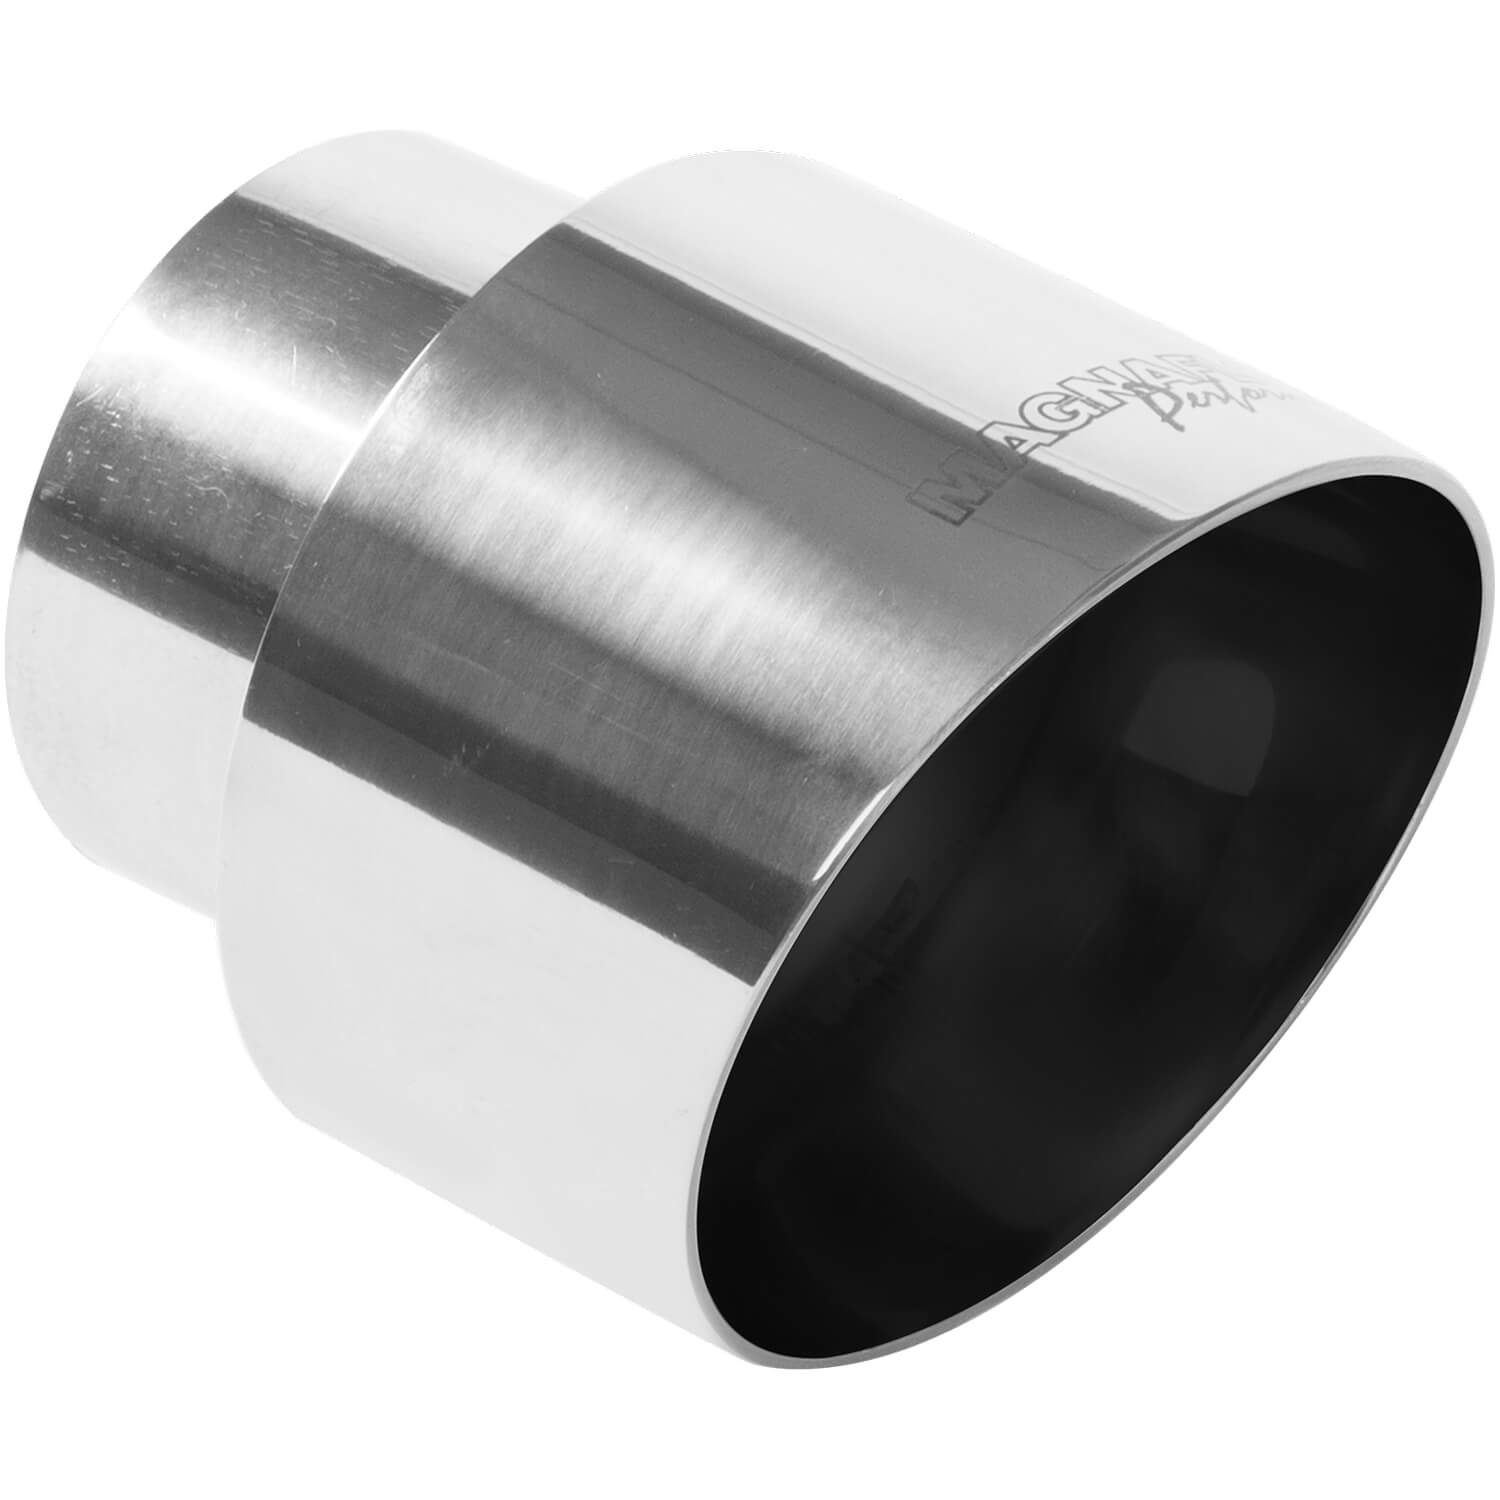 Magnaflow 35127 - Magnaflow Polished Stainless Steel Weld-On Exhaust Tips